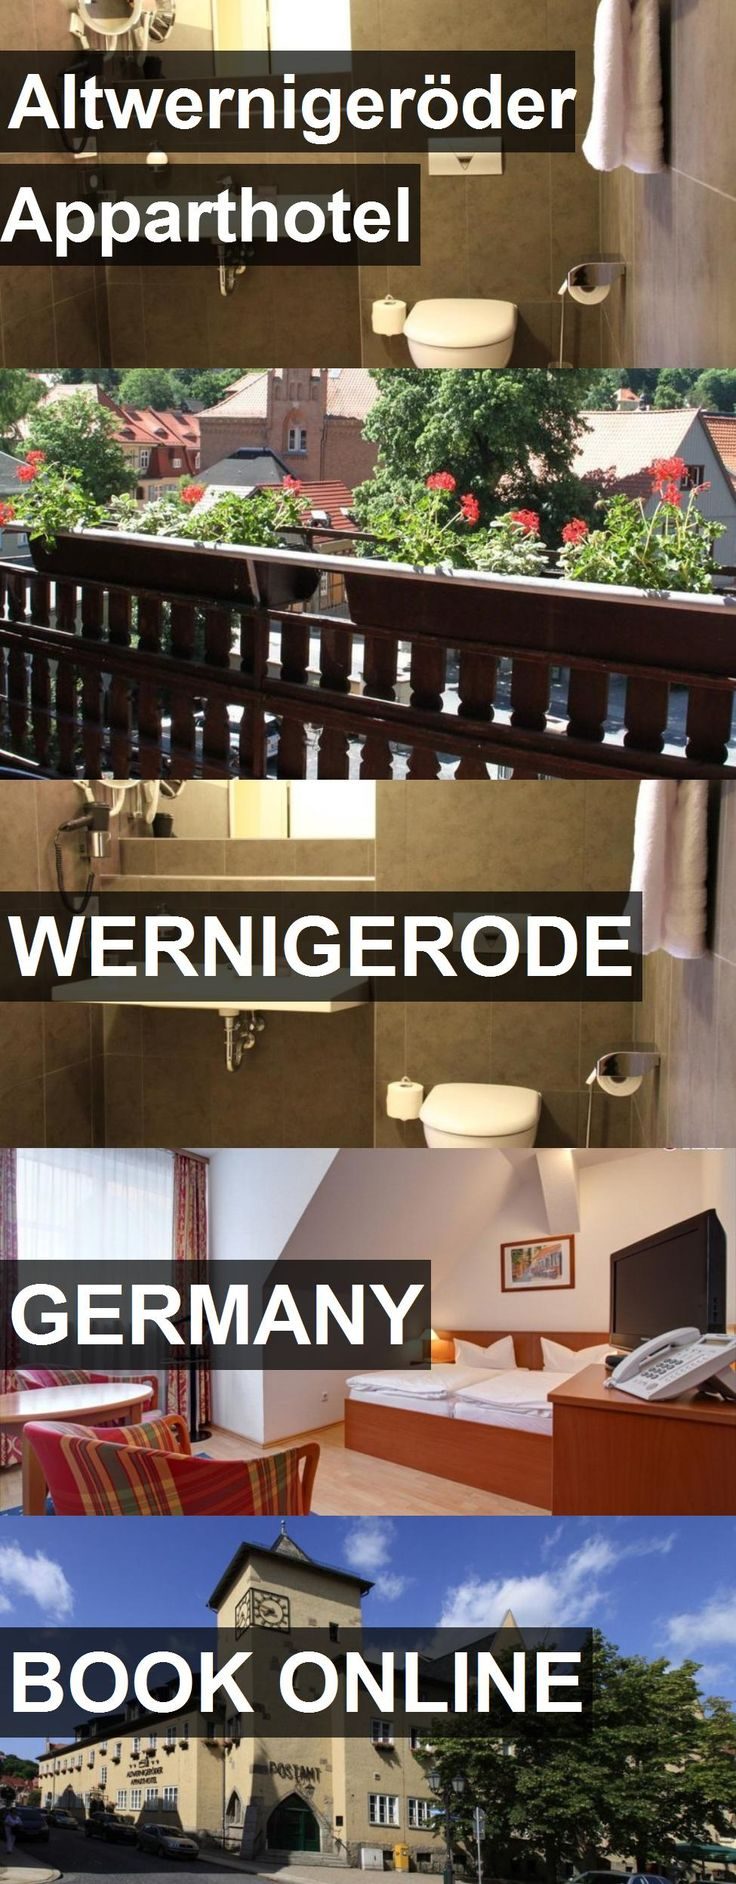 Hotel Altwernigeröder Apparthotel in Wernigerode, Germany. For more information, photos, reviews and best prices please follow the link. #Germany #Wernigerode #AltwernigeröderApparthotel #hotel #travel #vacation